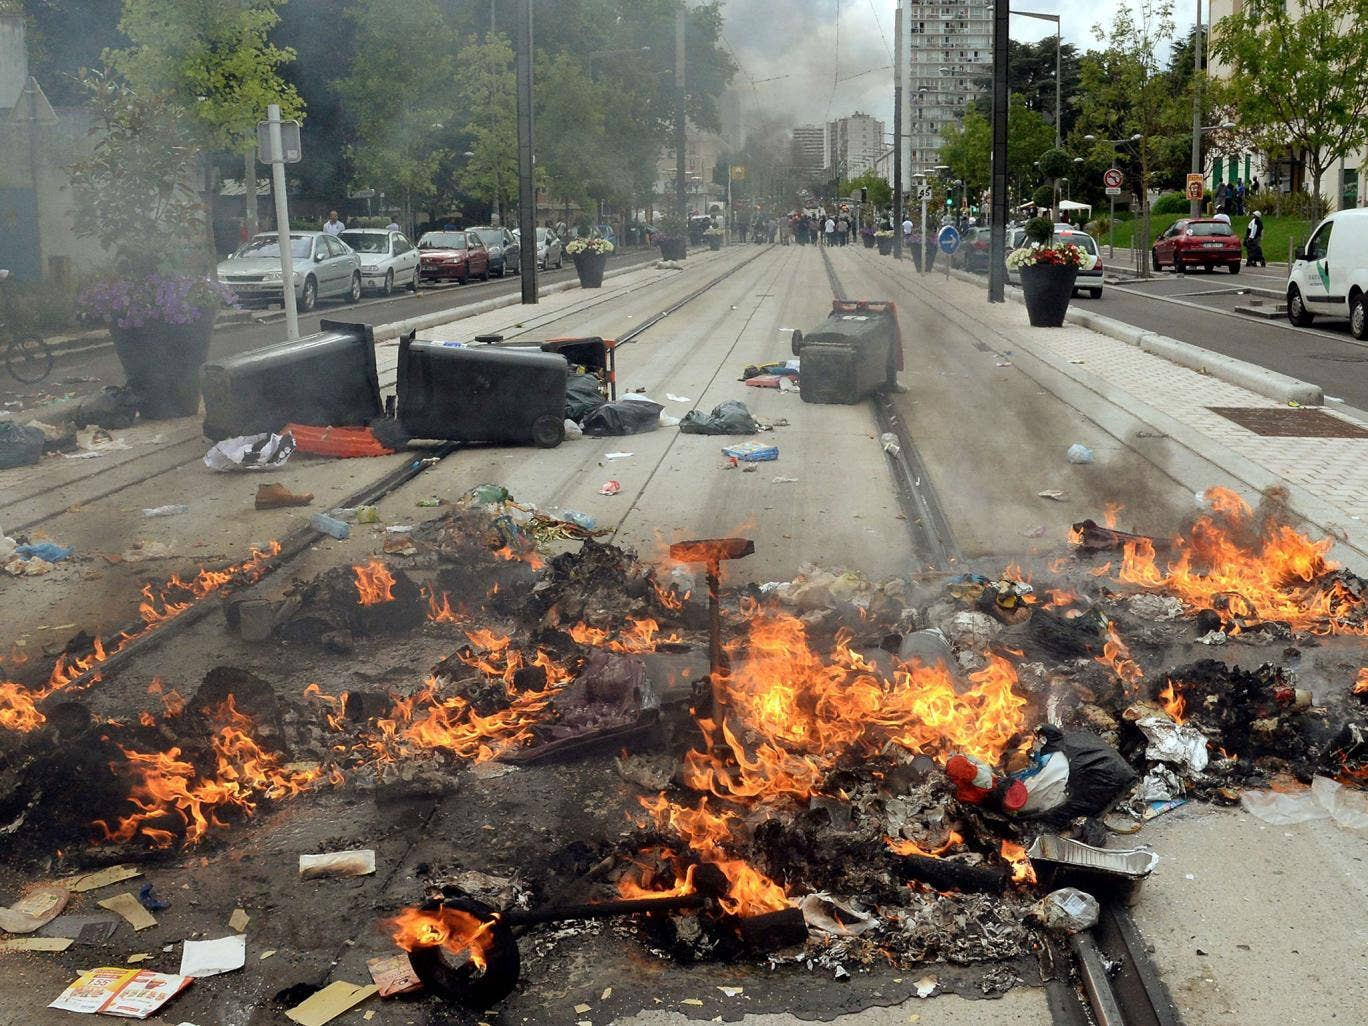 Burning detritus are seen along the tramway line in Sarcelles, a suburb north of Paris, on July 20, 2014, after clashes following a demonstration denouncing Israel's military campaign in Gaza